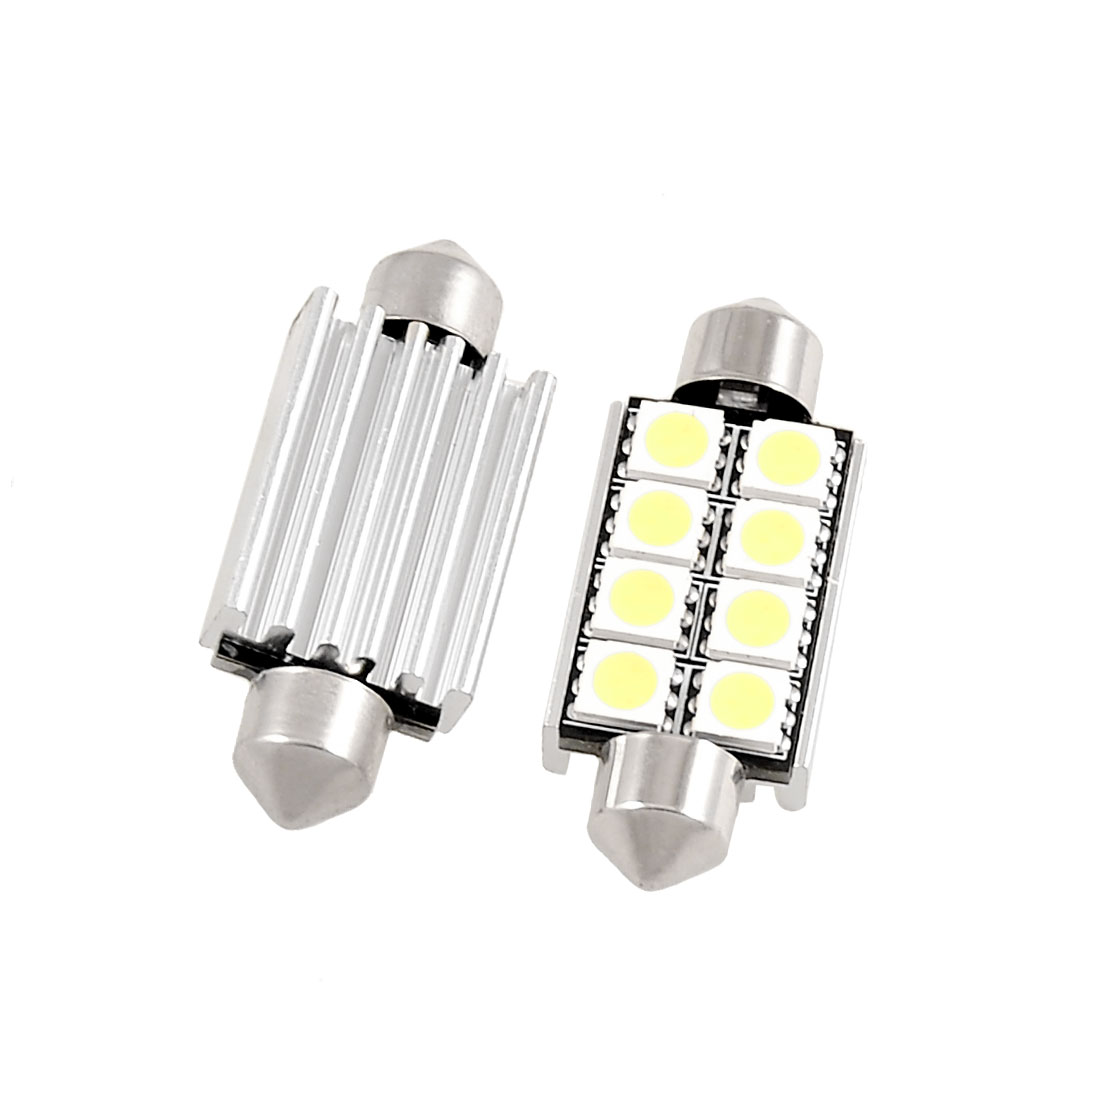 2 x Car 41mm White 8 LED 5050 SMD Festoon Dome Light DC 12V w Heat Sink